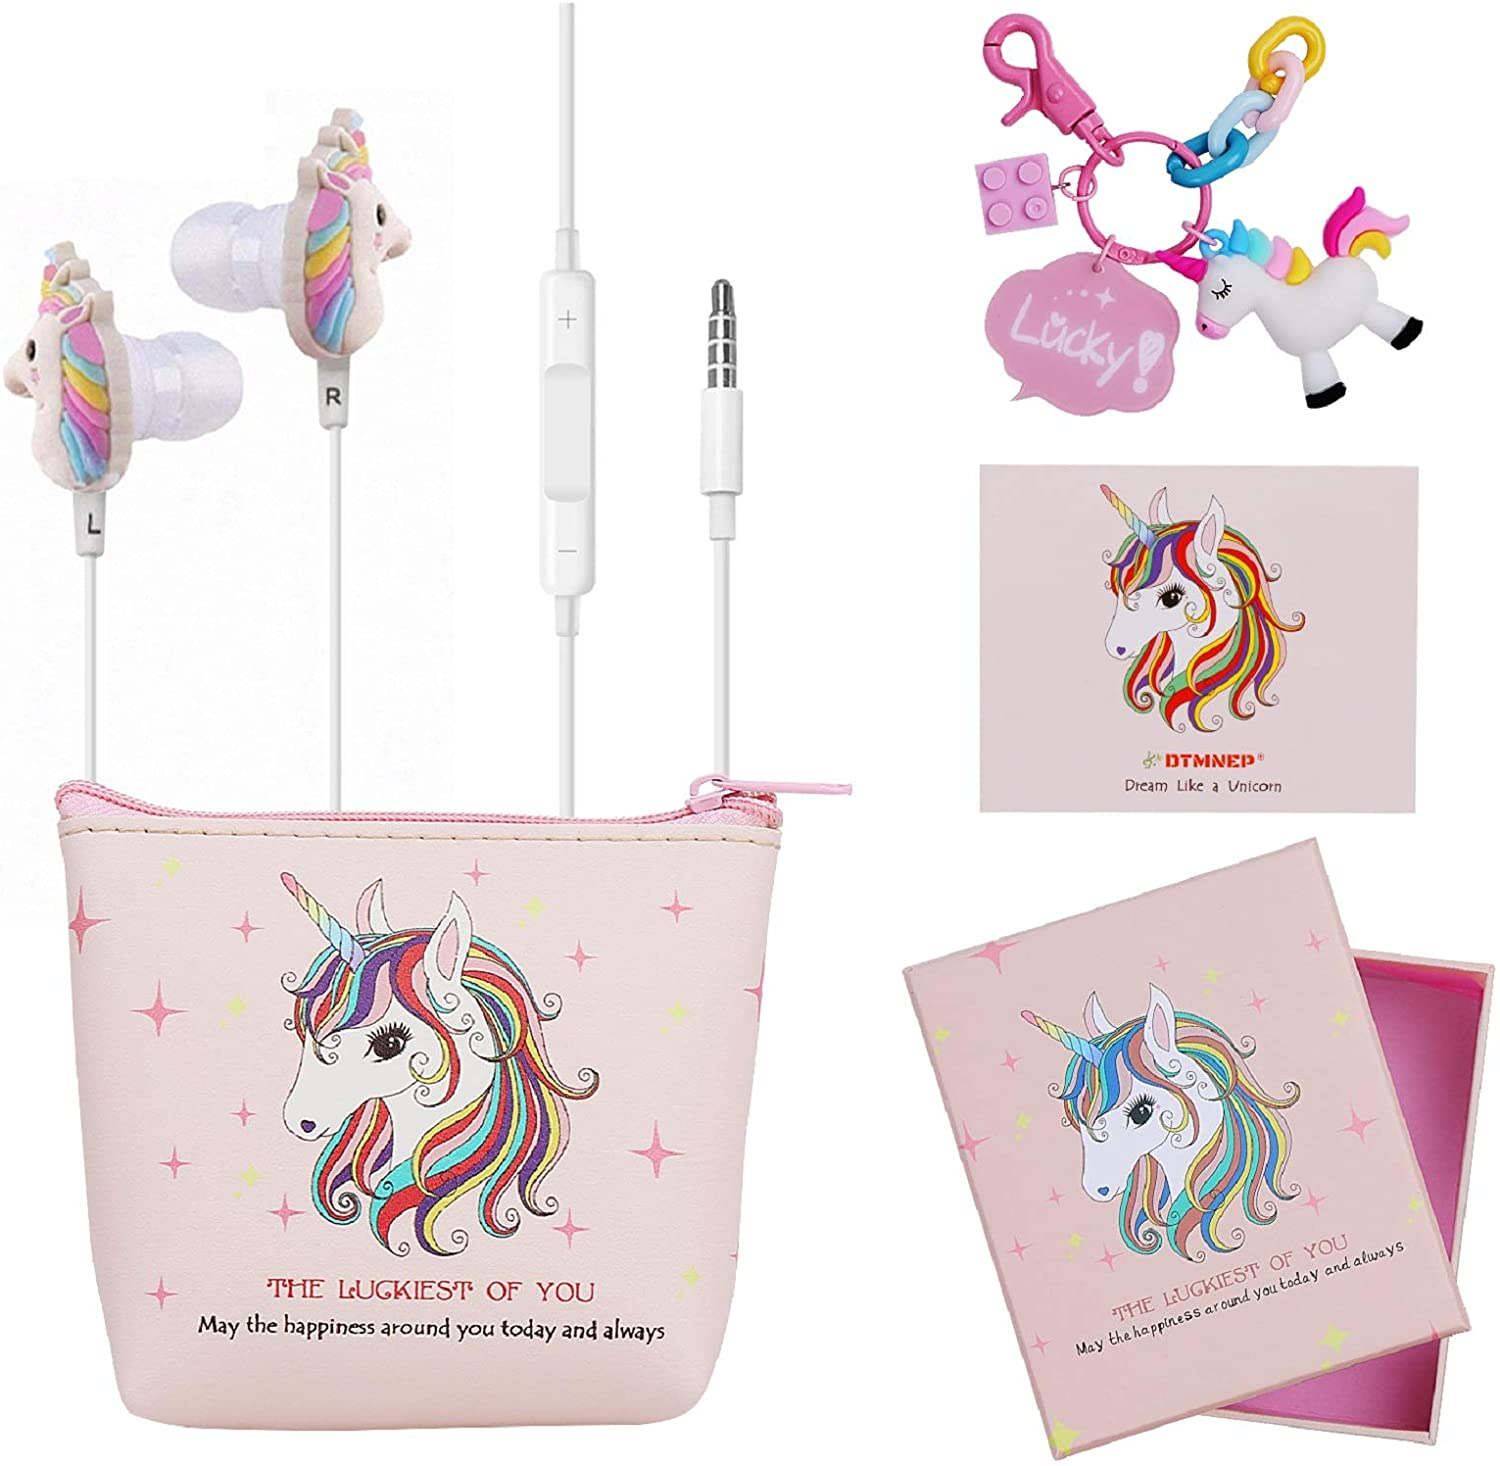 DTMNEP Unicorn Gifts Earbuds Earphones for Girls Kids Compatible with Apple Android with Unicorn Key Chain, Headphone Bag, Gift Card, Gift Box, and Back to School Supply for Kids